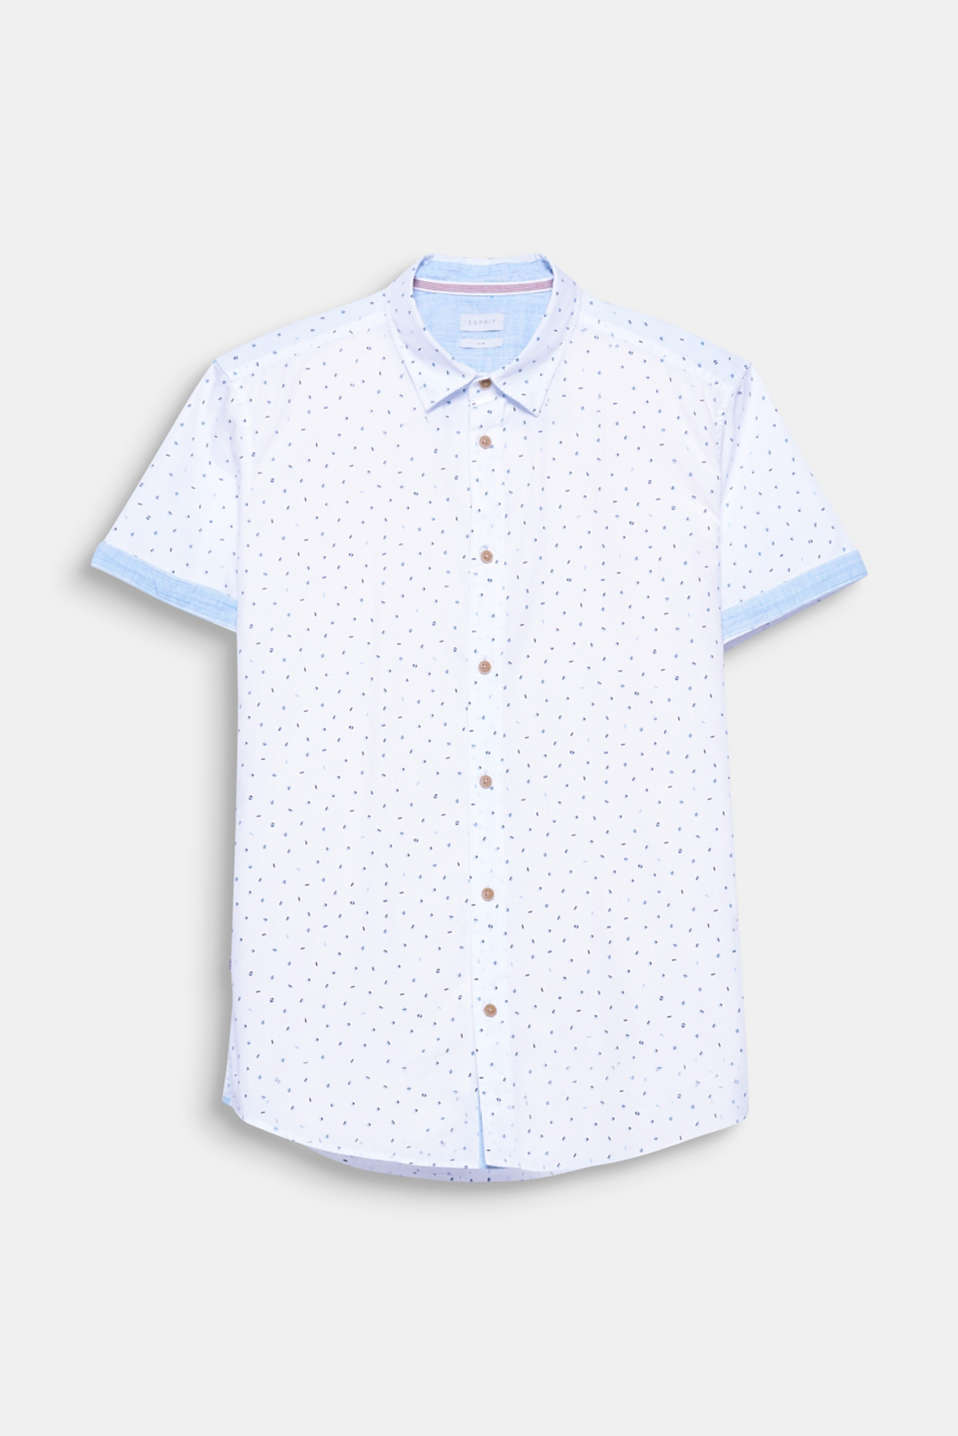 The geometric print gives this shirt in 100% cotton a modern and urban look.